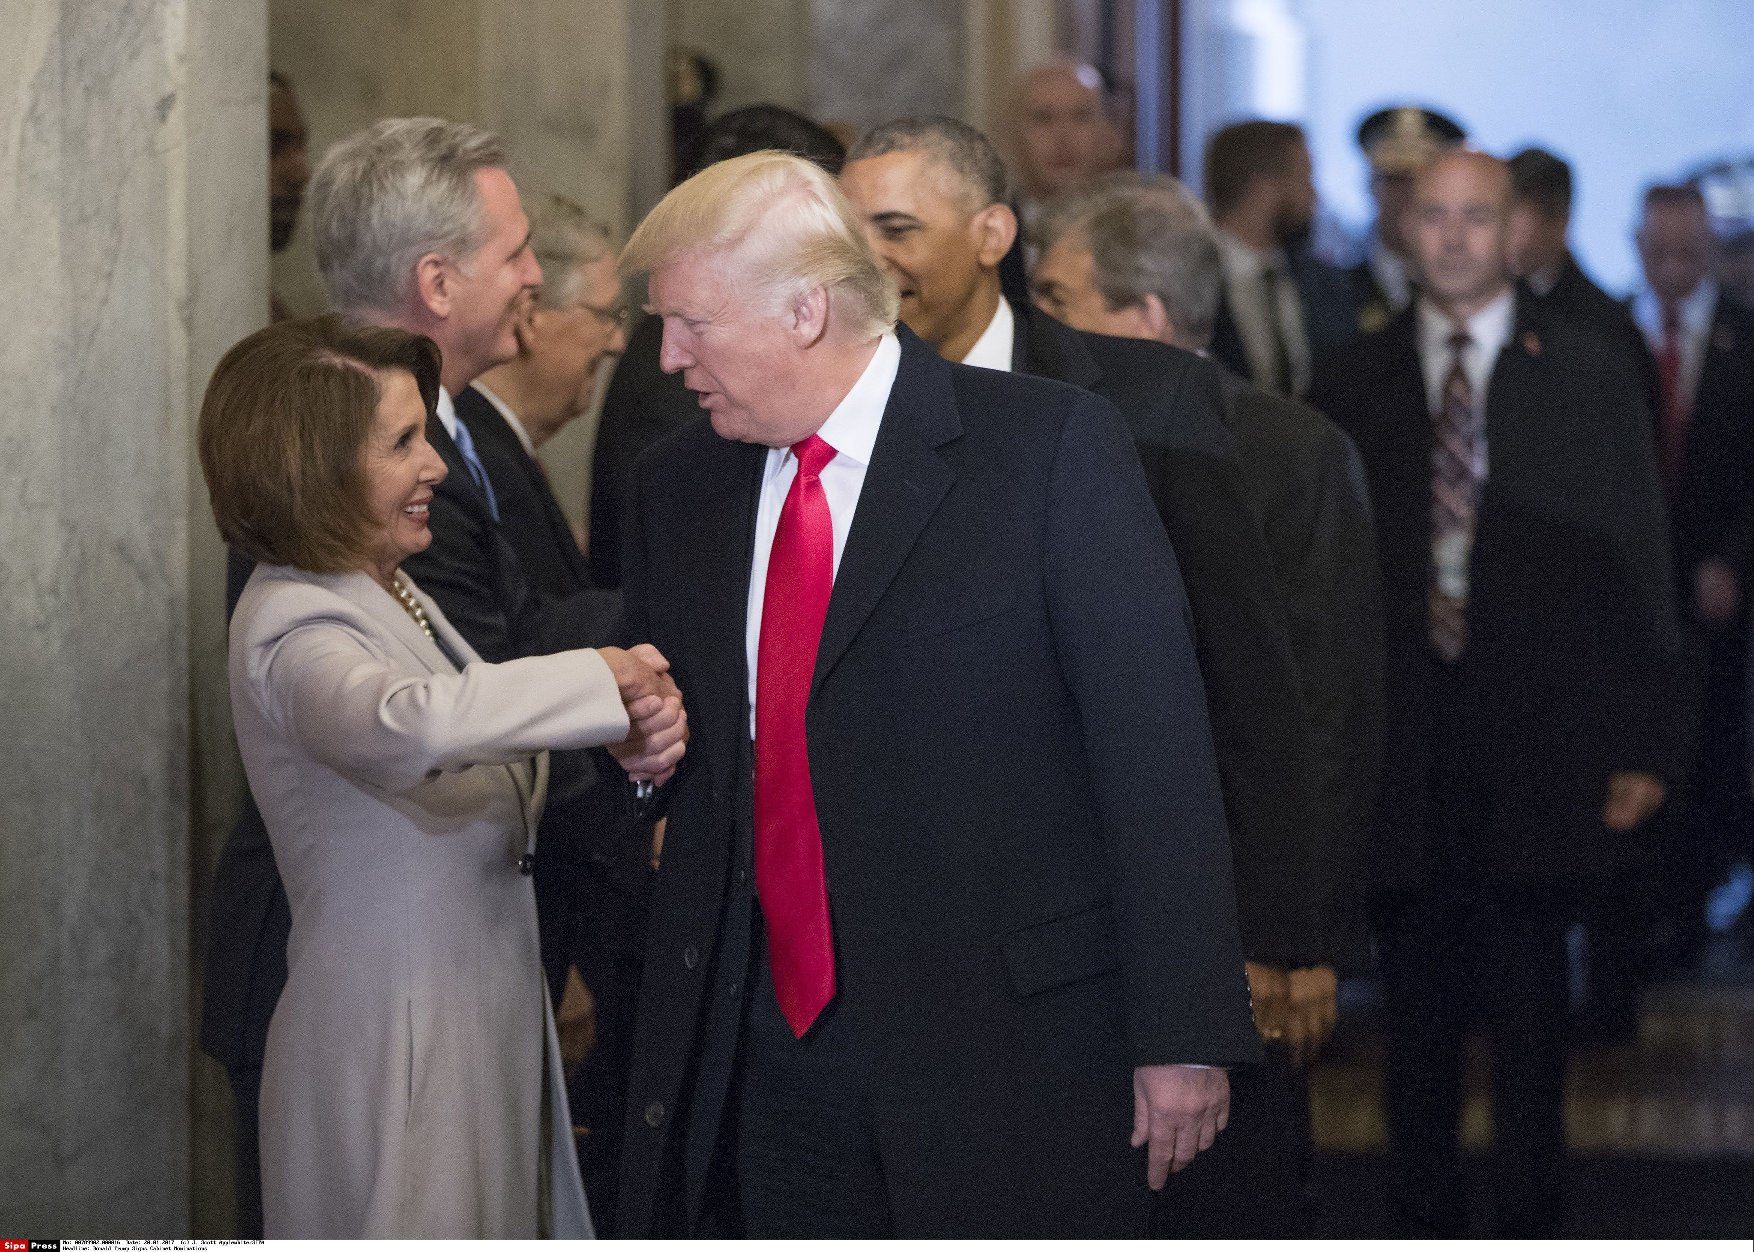 United States President-elect Donald Trump greets US House Minority Leader Nancy Pelosi (Democrat of California), and other Congressional leaders as he arrives for his inauguration ceremony on Capitol Hill in Washington, Friday, Jan. 20, 2017. Photo Credit: J. Scott Applewhite /CNP/AdMedia//ADMEDIA_adm_012017_Trump-Inaugural2_CNP_049/Credit:J. Scott Applewhite/SIPA/1701221841, Image: 312482229, License: Rights-managed, Restrictions: , Model Release: no, Credit line: Profimedia, TEMP Sipa Press